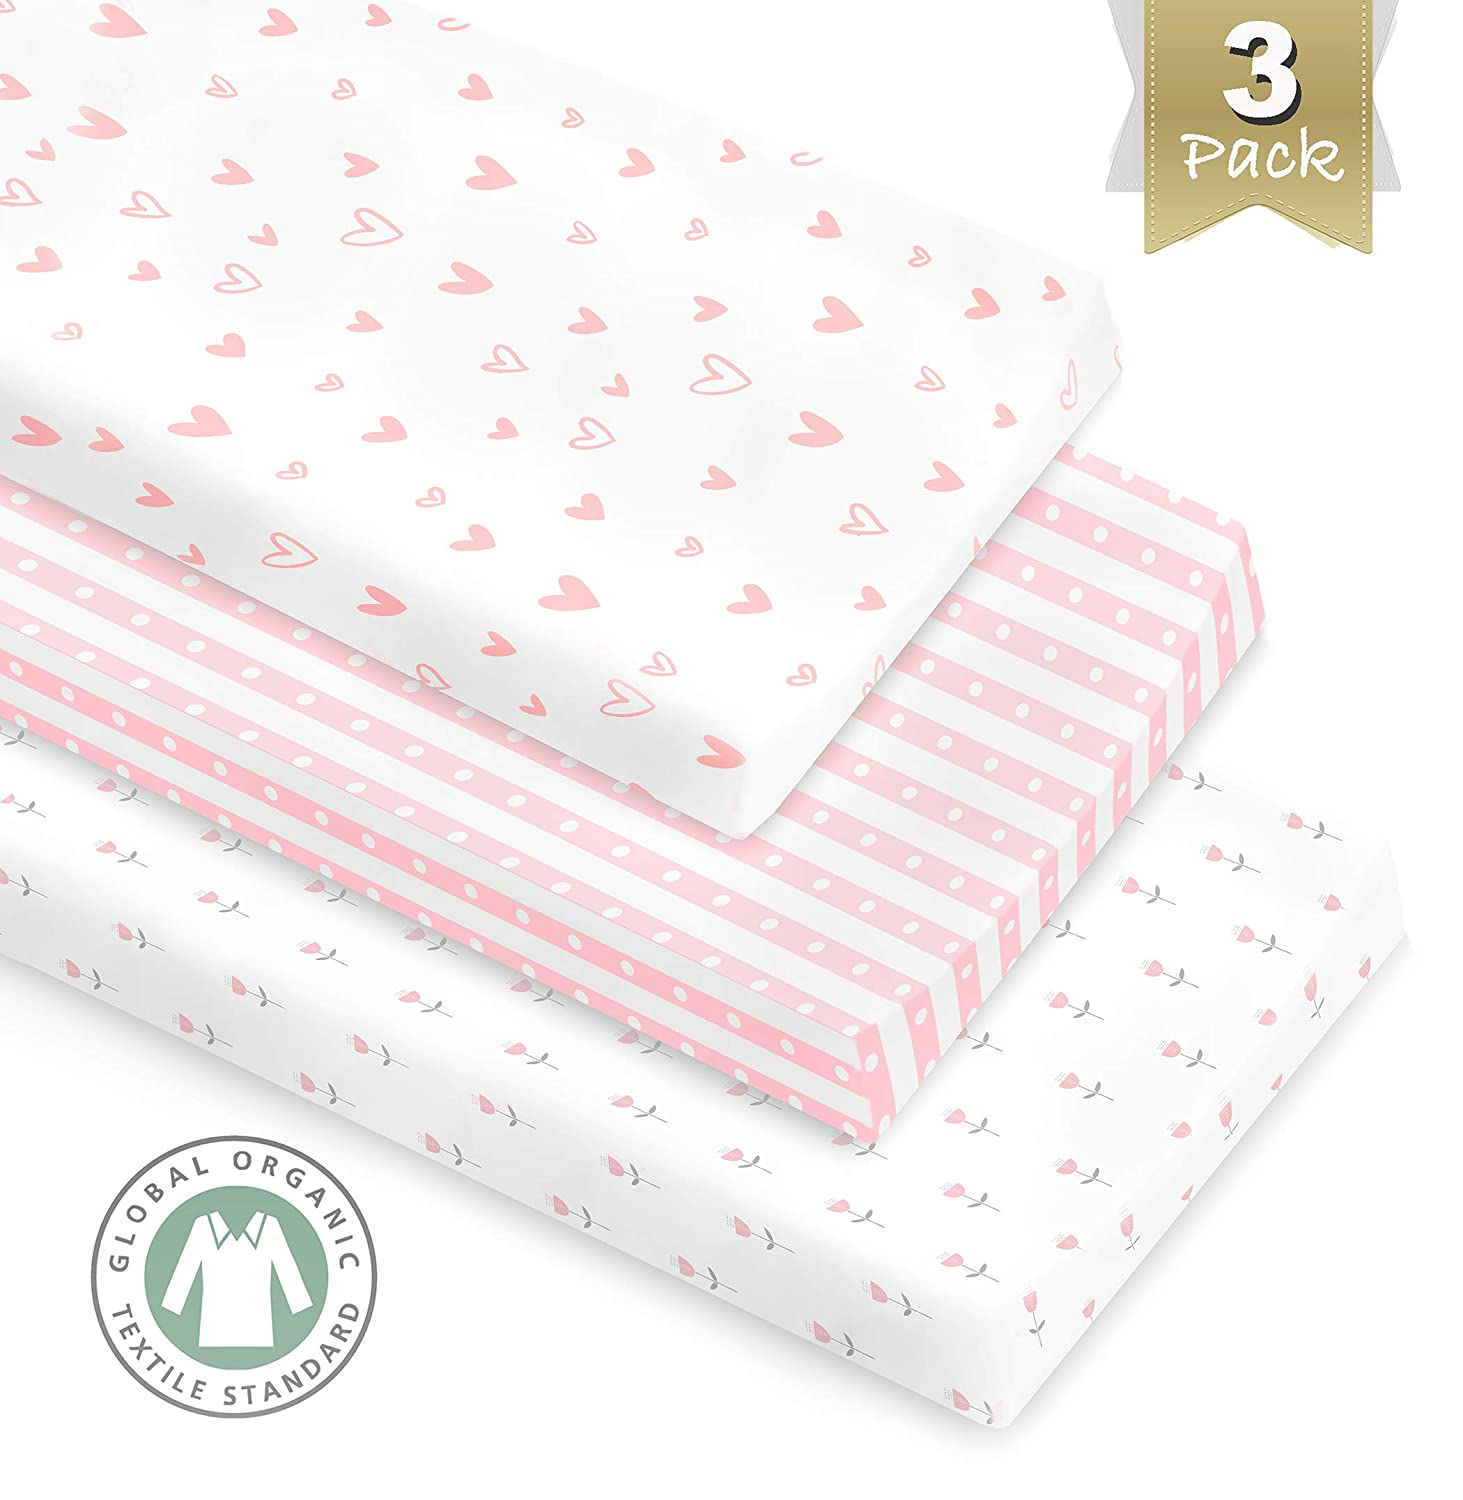 3 Pack GOTS Certified Organic Cotton Changing Pad Covers or Cradle Sheet for Girl, with Safety Strap Holes Metathrive